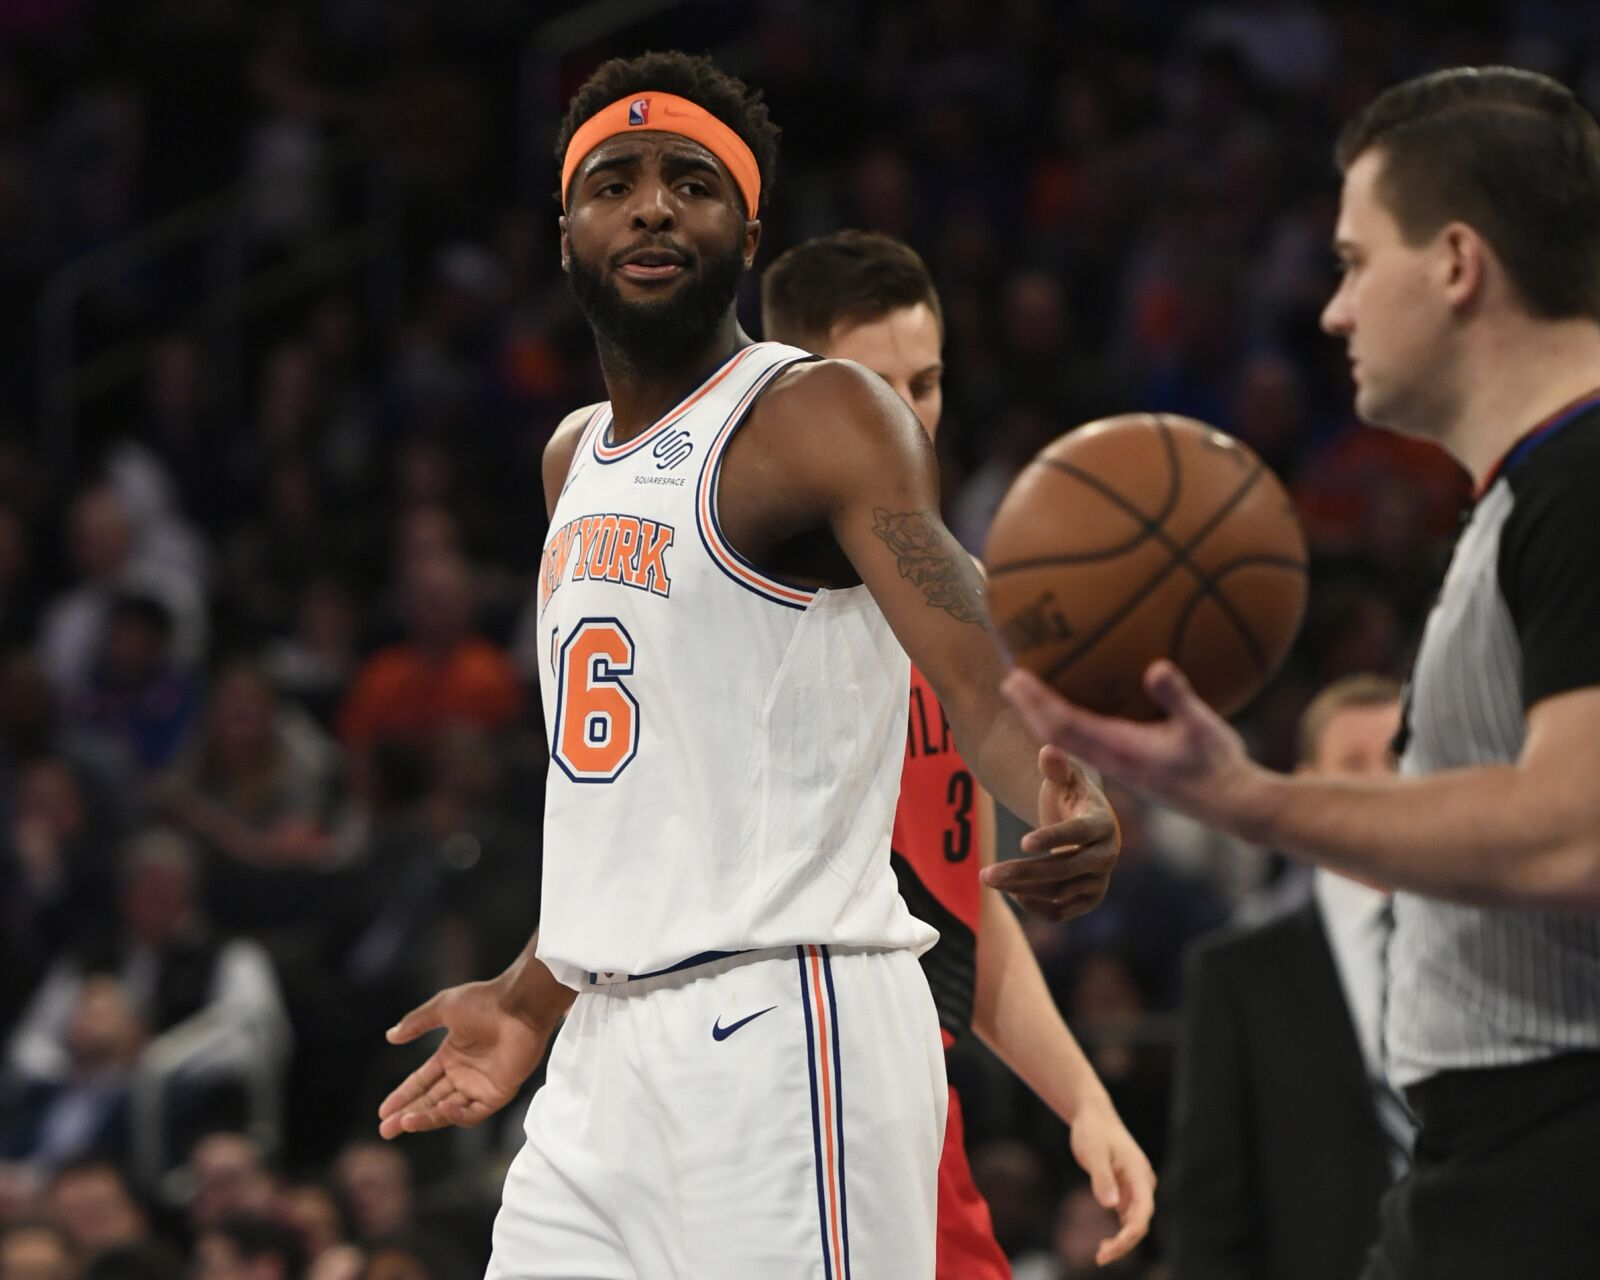 New York Knicks: Mitchell Robinson suffers ankle injury against Hornets